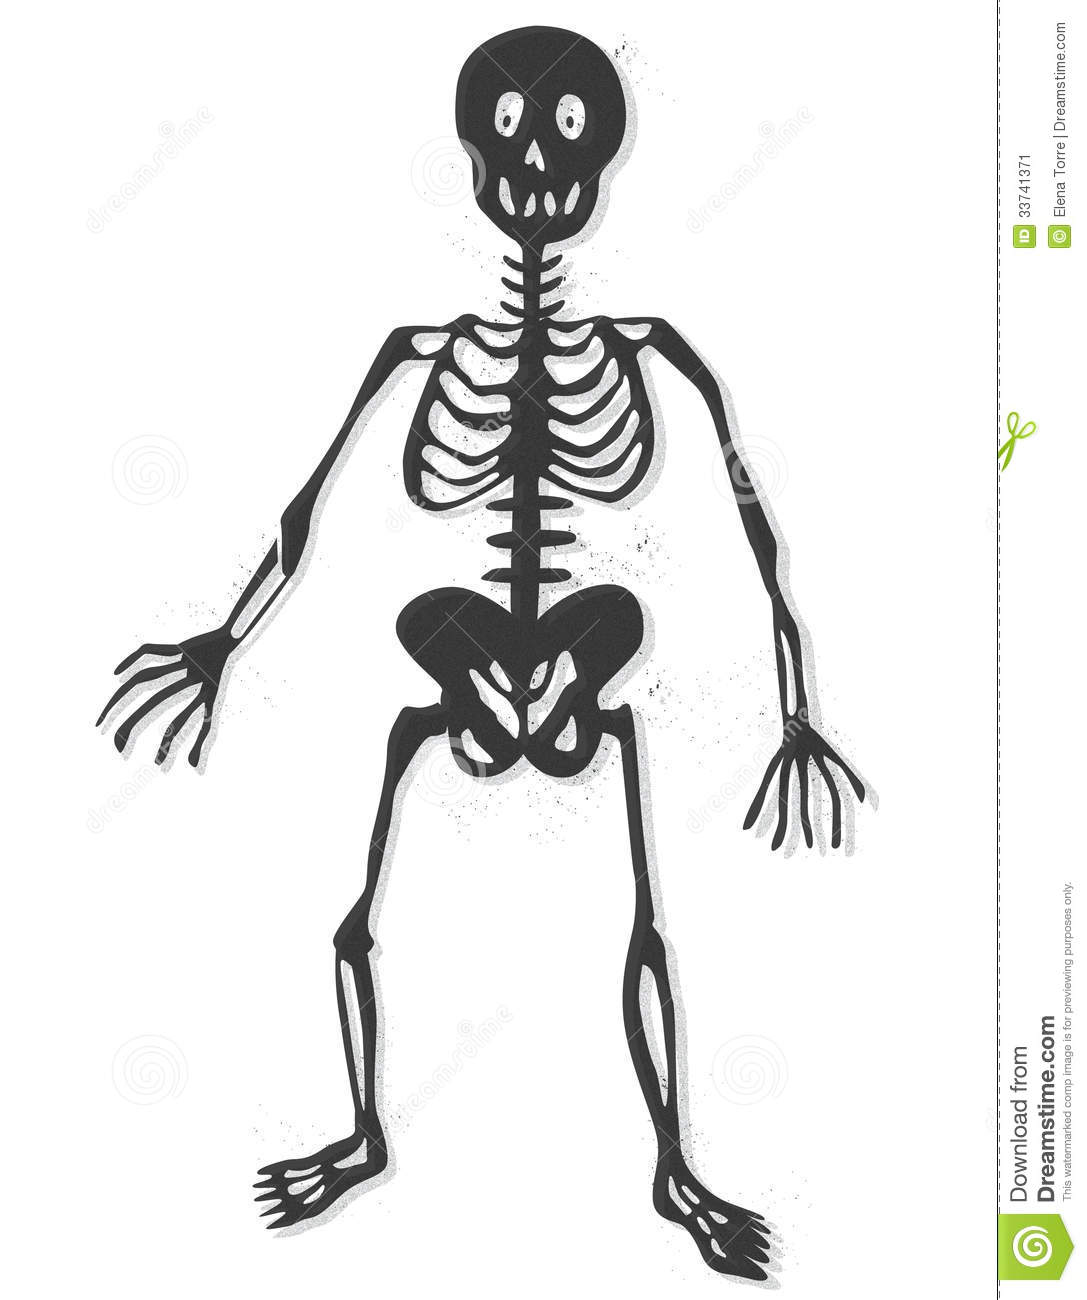 Skeleton vector stock vector. Image of chest, human